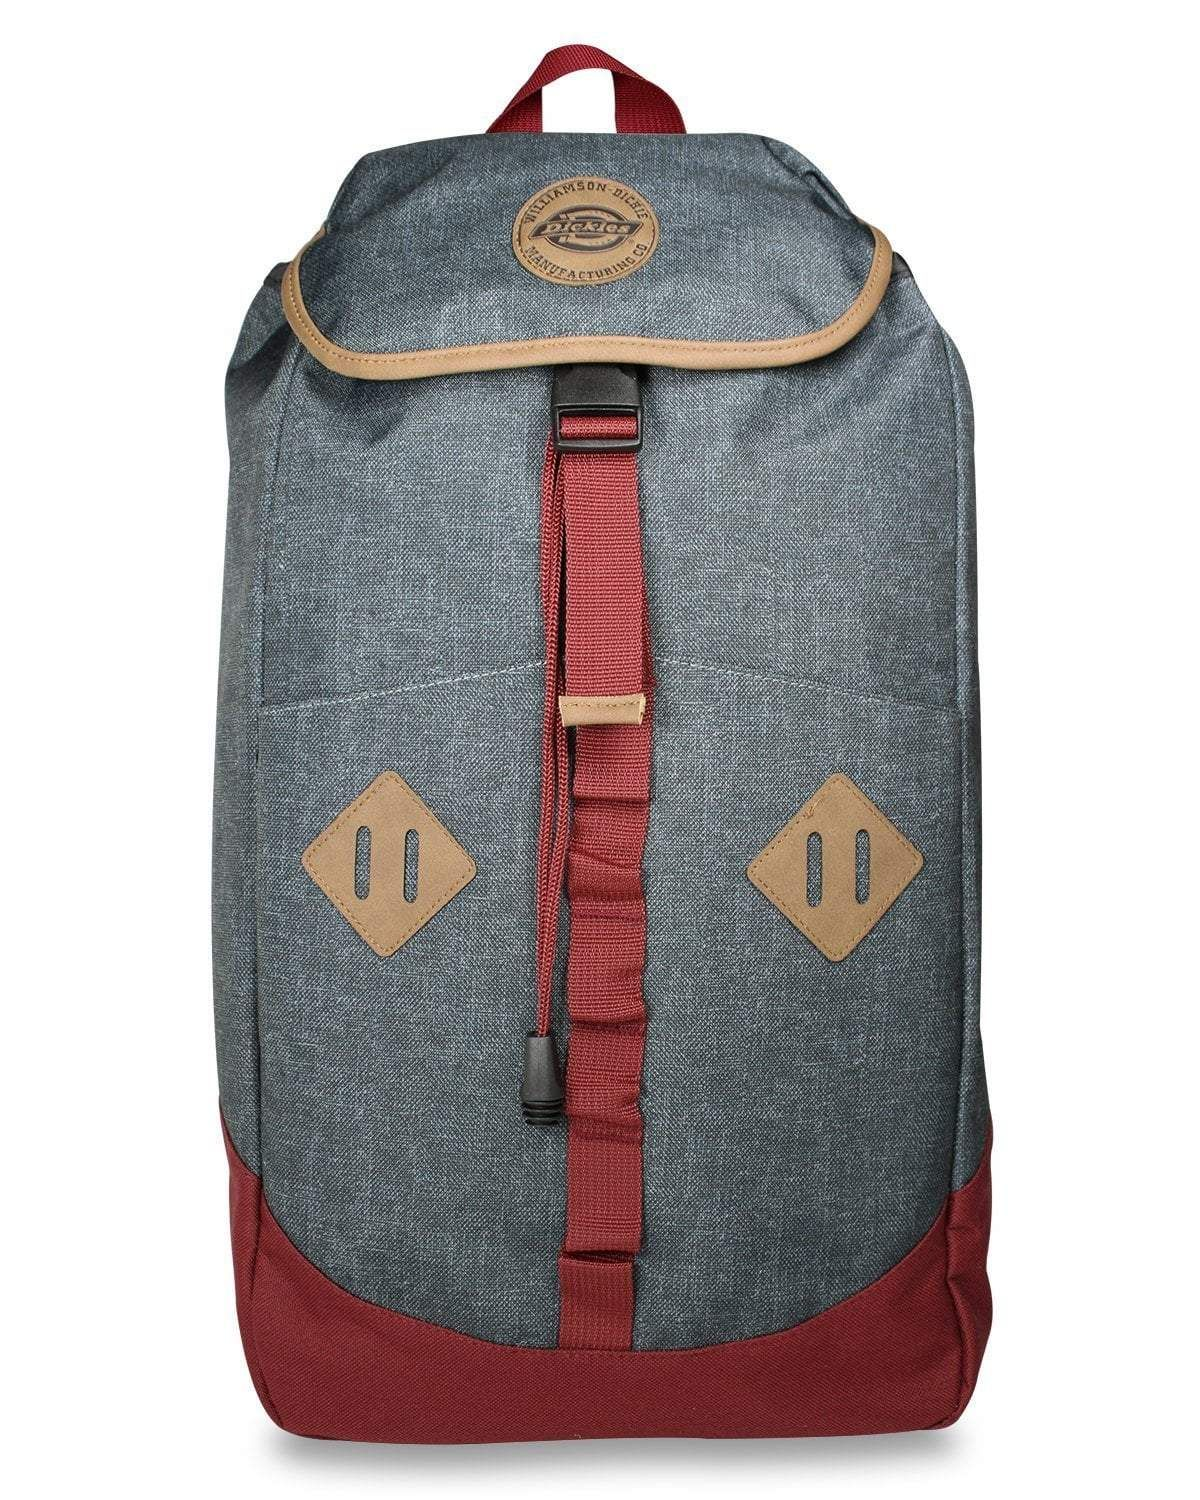 22f44fa2d Dickies Pop Top 300d Poly Backpack, Charcoal Heather in 2019 ...